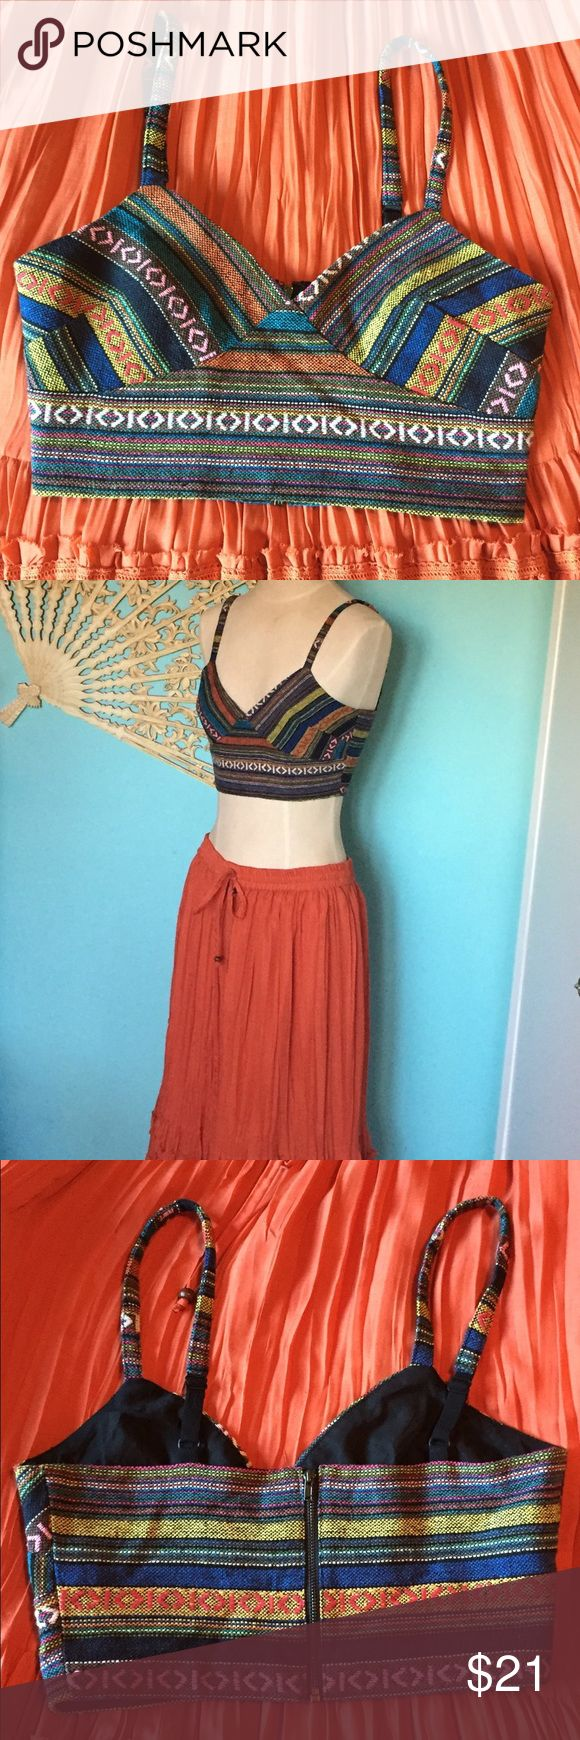 Hippie Woven Boho festival top Southwest bralette So Bohemian and so beautiful! This listing for top: Lots of colors woven in a beautiful design. Zipper up the back. Size medium. I feel more of a small fit. (Not a lot of stretch around the rib area.) Love this with the orange maxi skirt I have also listed. Your Vacation, Honeymoon, Beach day or Festival outfit is all ready to go! I also have a long turquoise necklace and a vintage sun necklace that would look perfect with this! Forever 21…